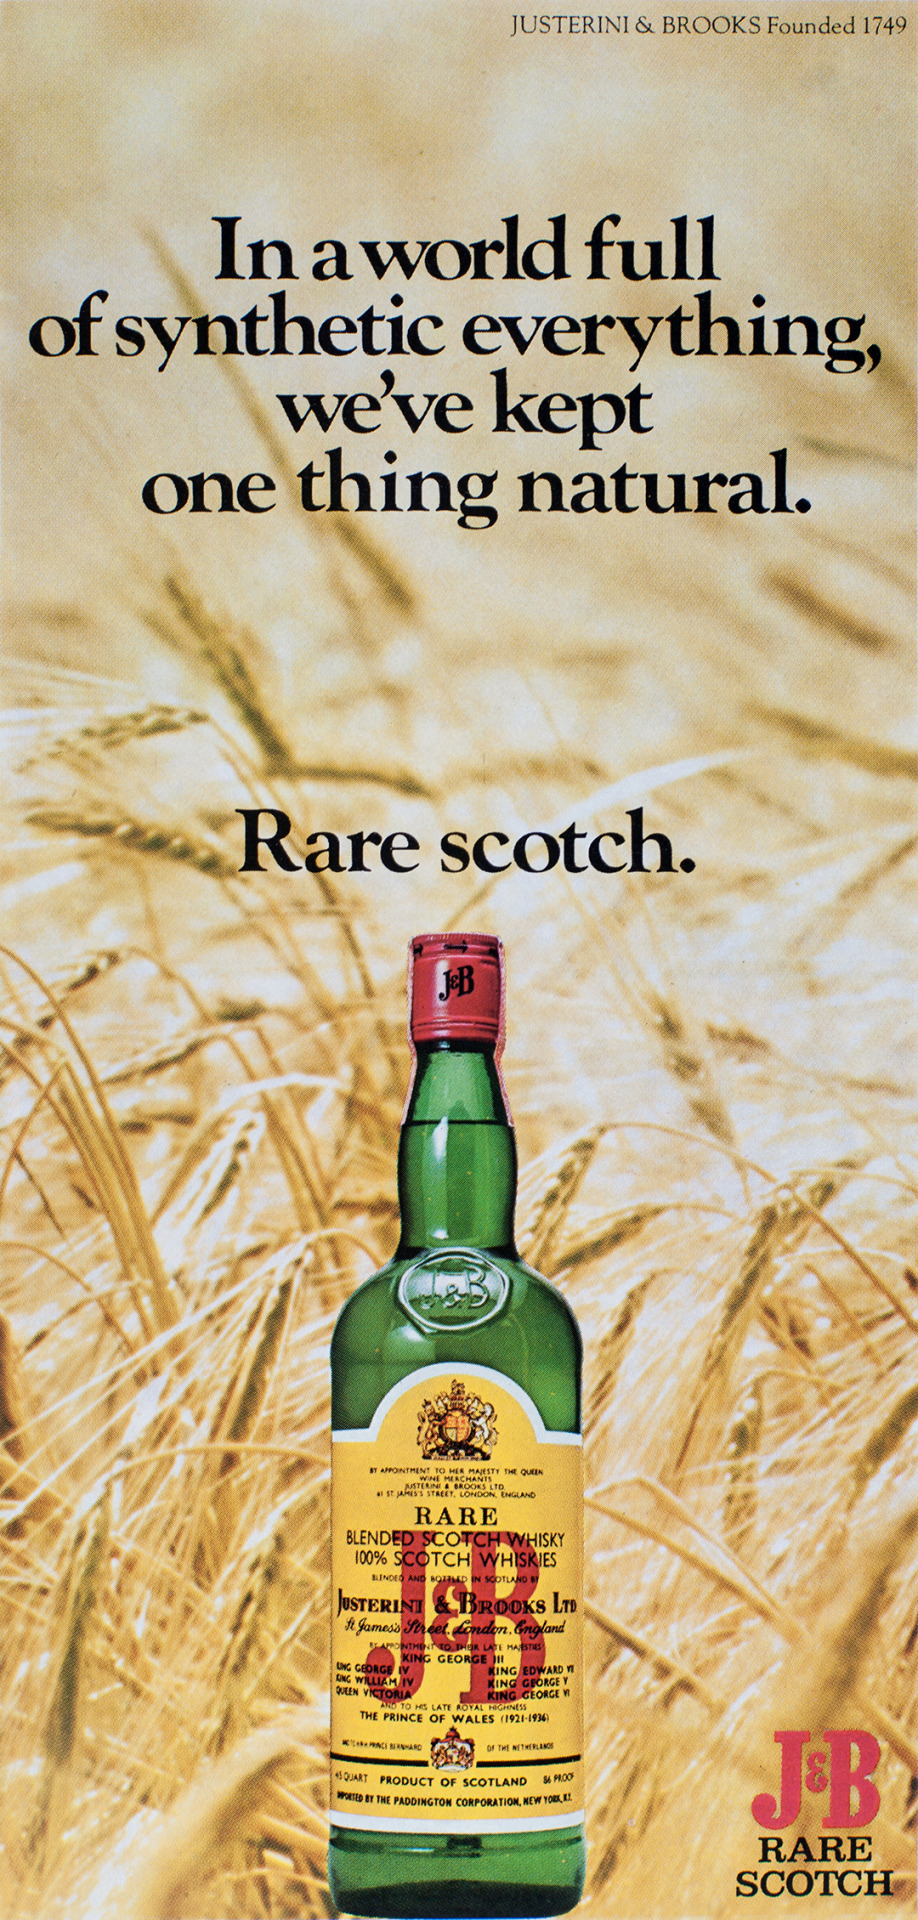 J&B Advertisement - Gourmet: April 1977